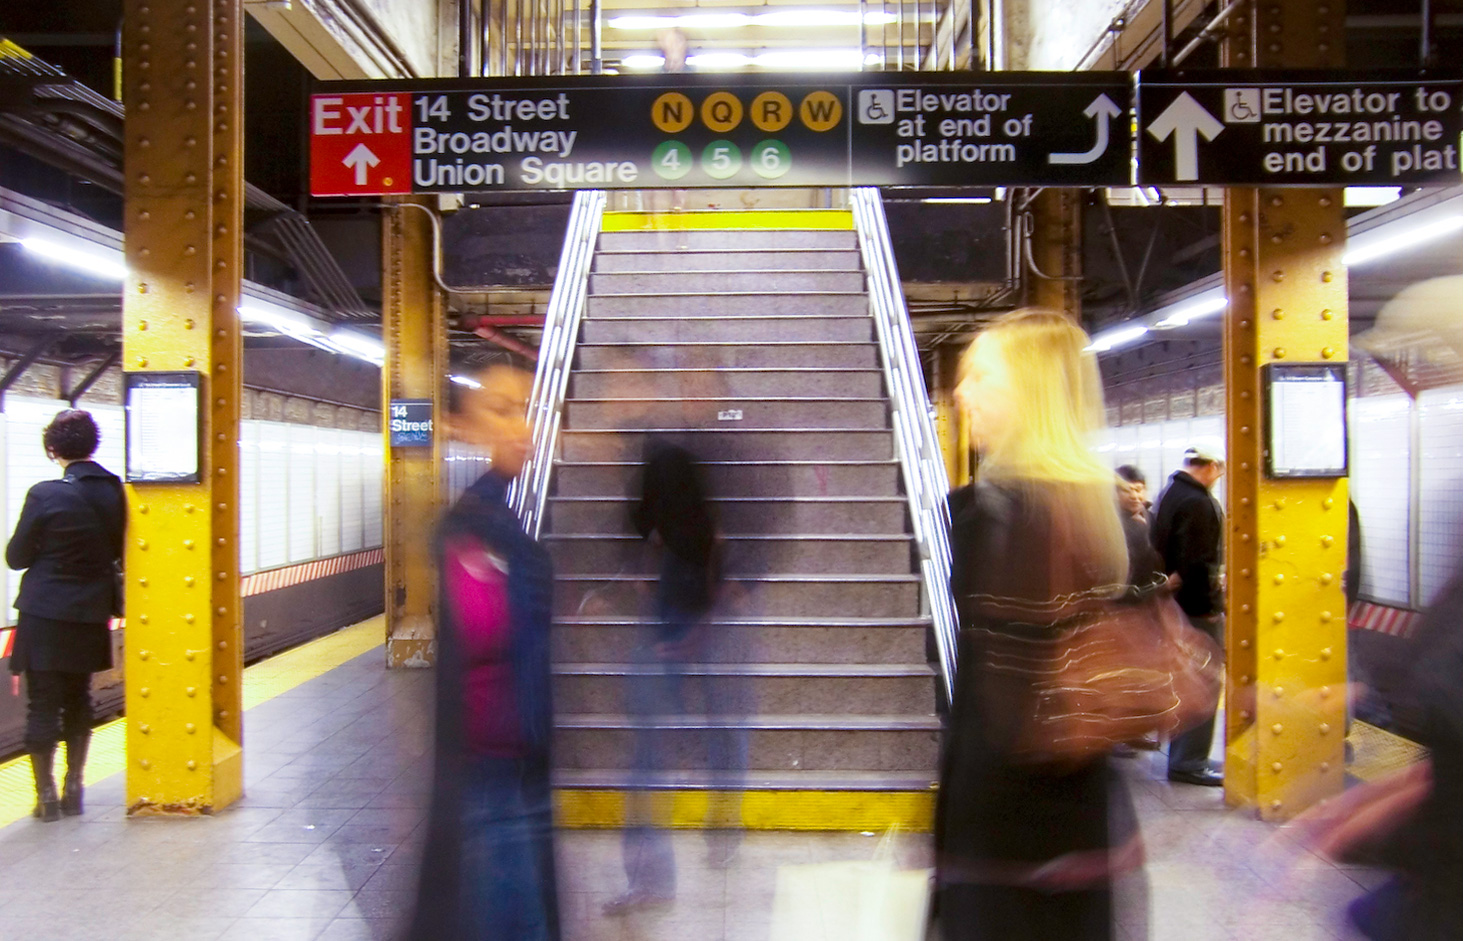 Mta Subway Map Elevators.Transitcenter Maps Out The Next 50 Subway Stations That Should Be